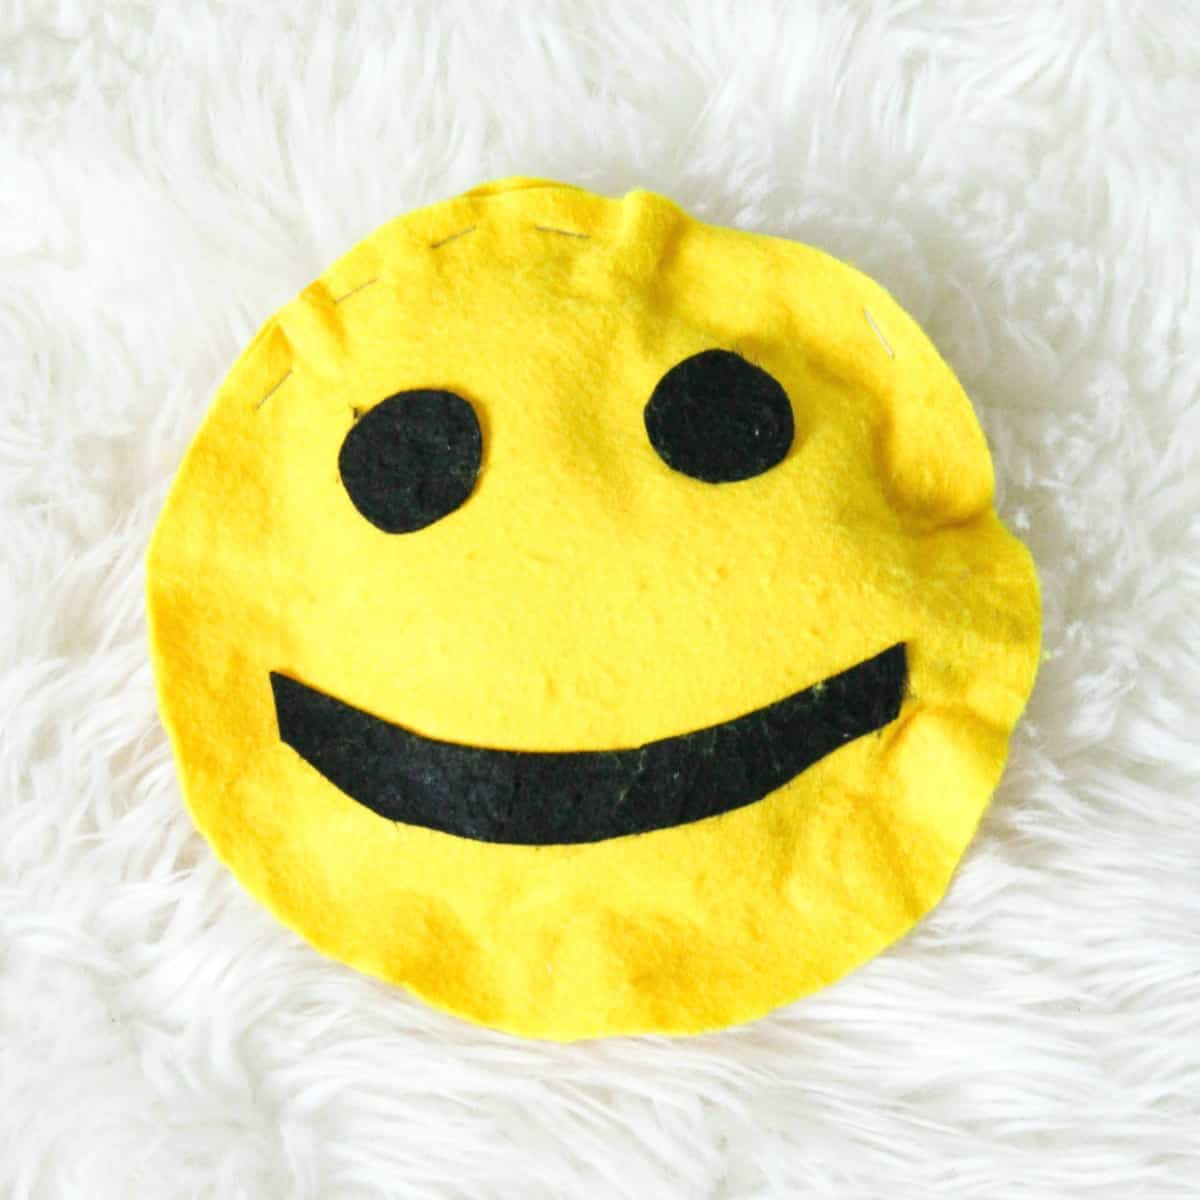 Easy Kids Sewing Projects - DIY Emoji Pillows